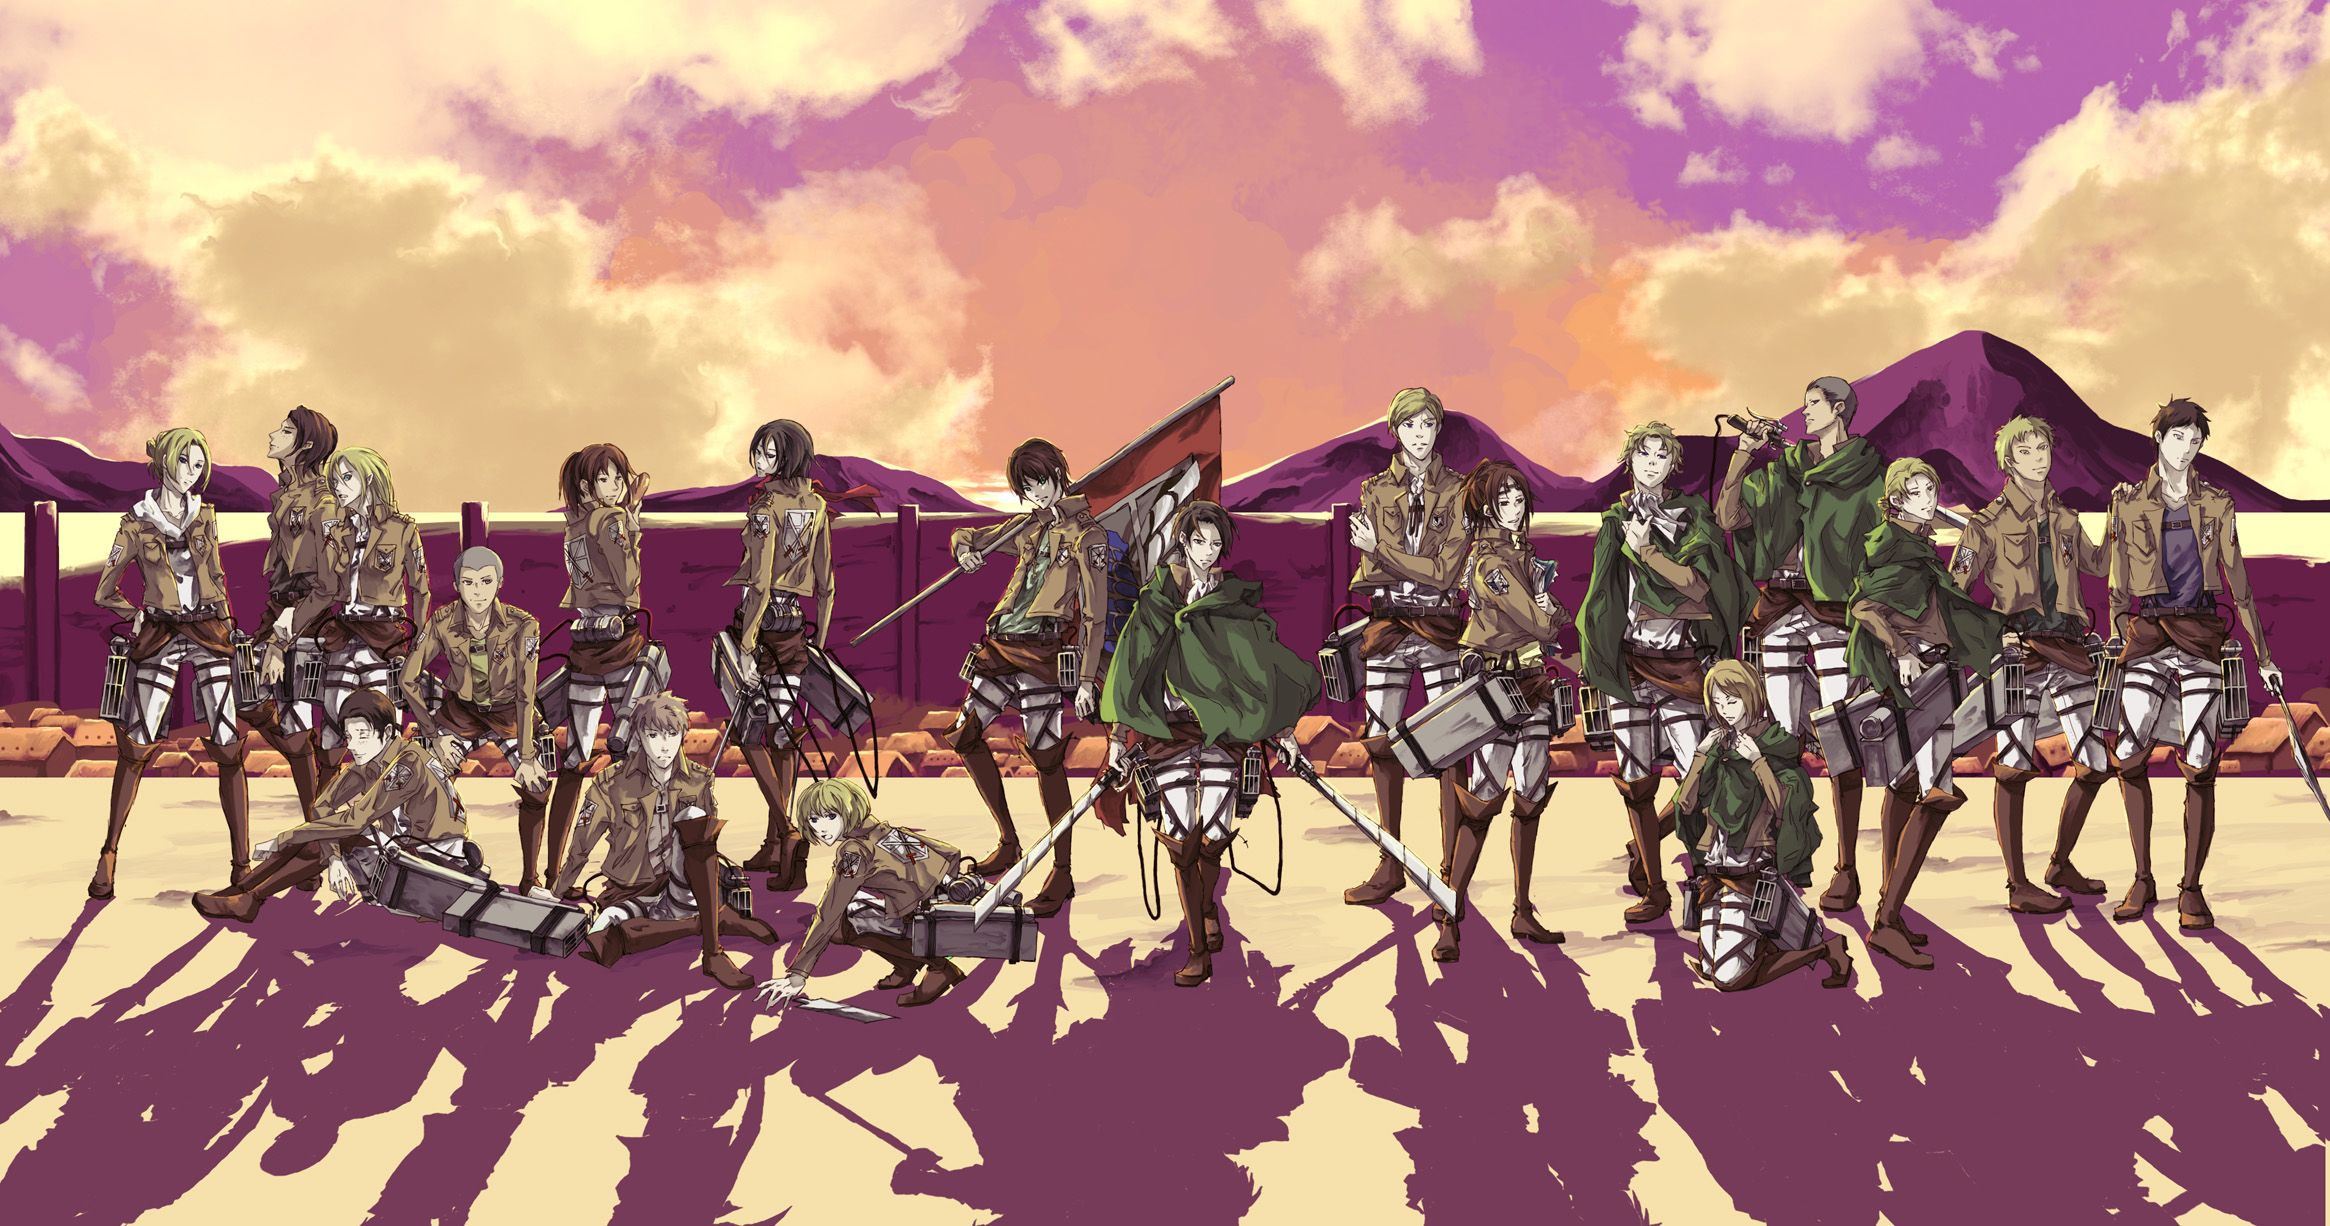 shingeki no kyojin wallpaper anime jpeg grafik